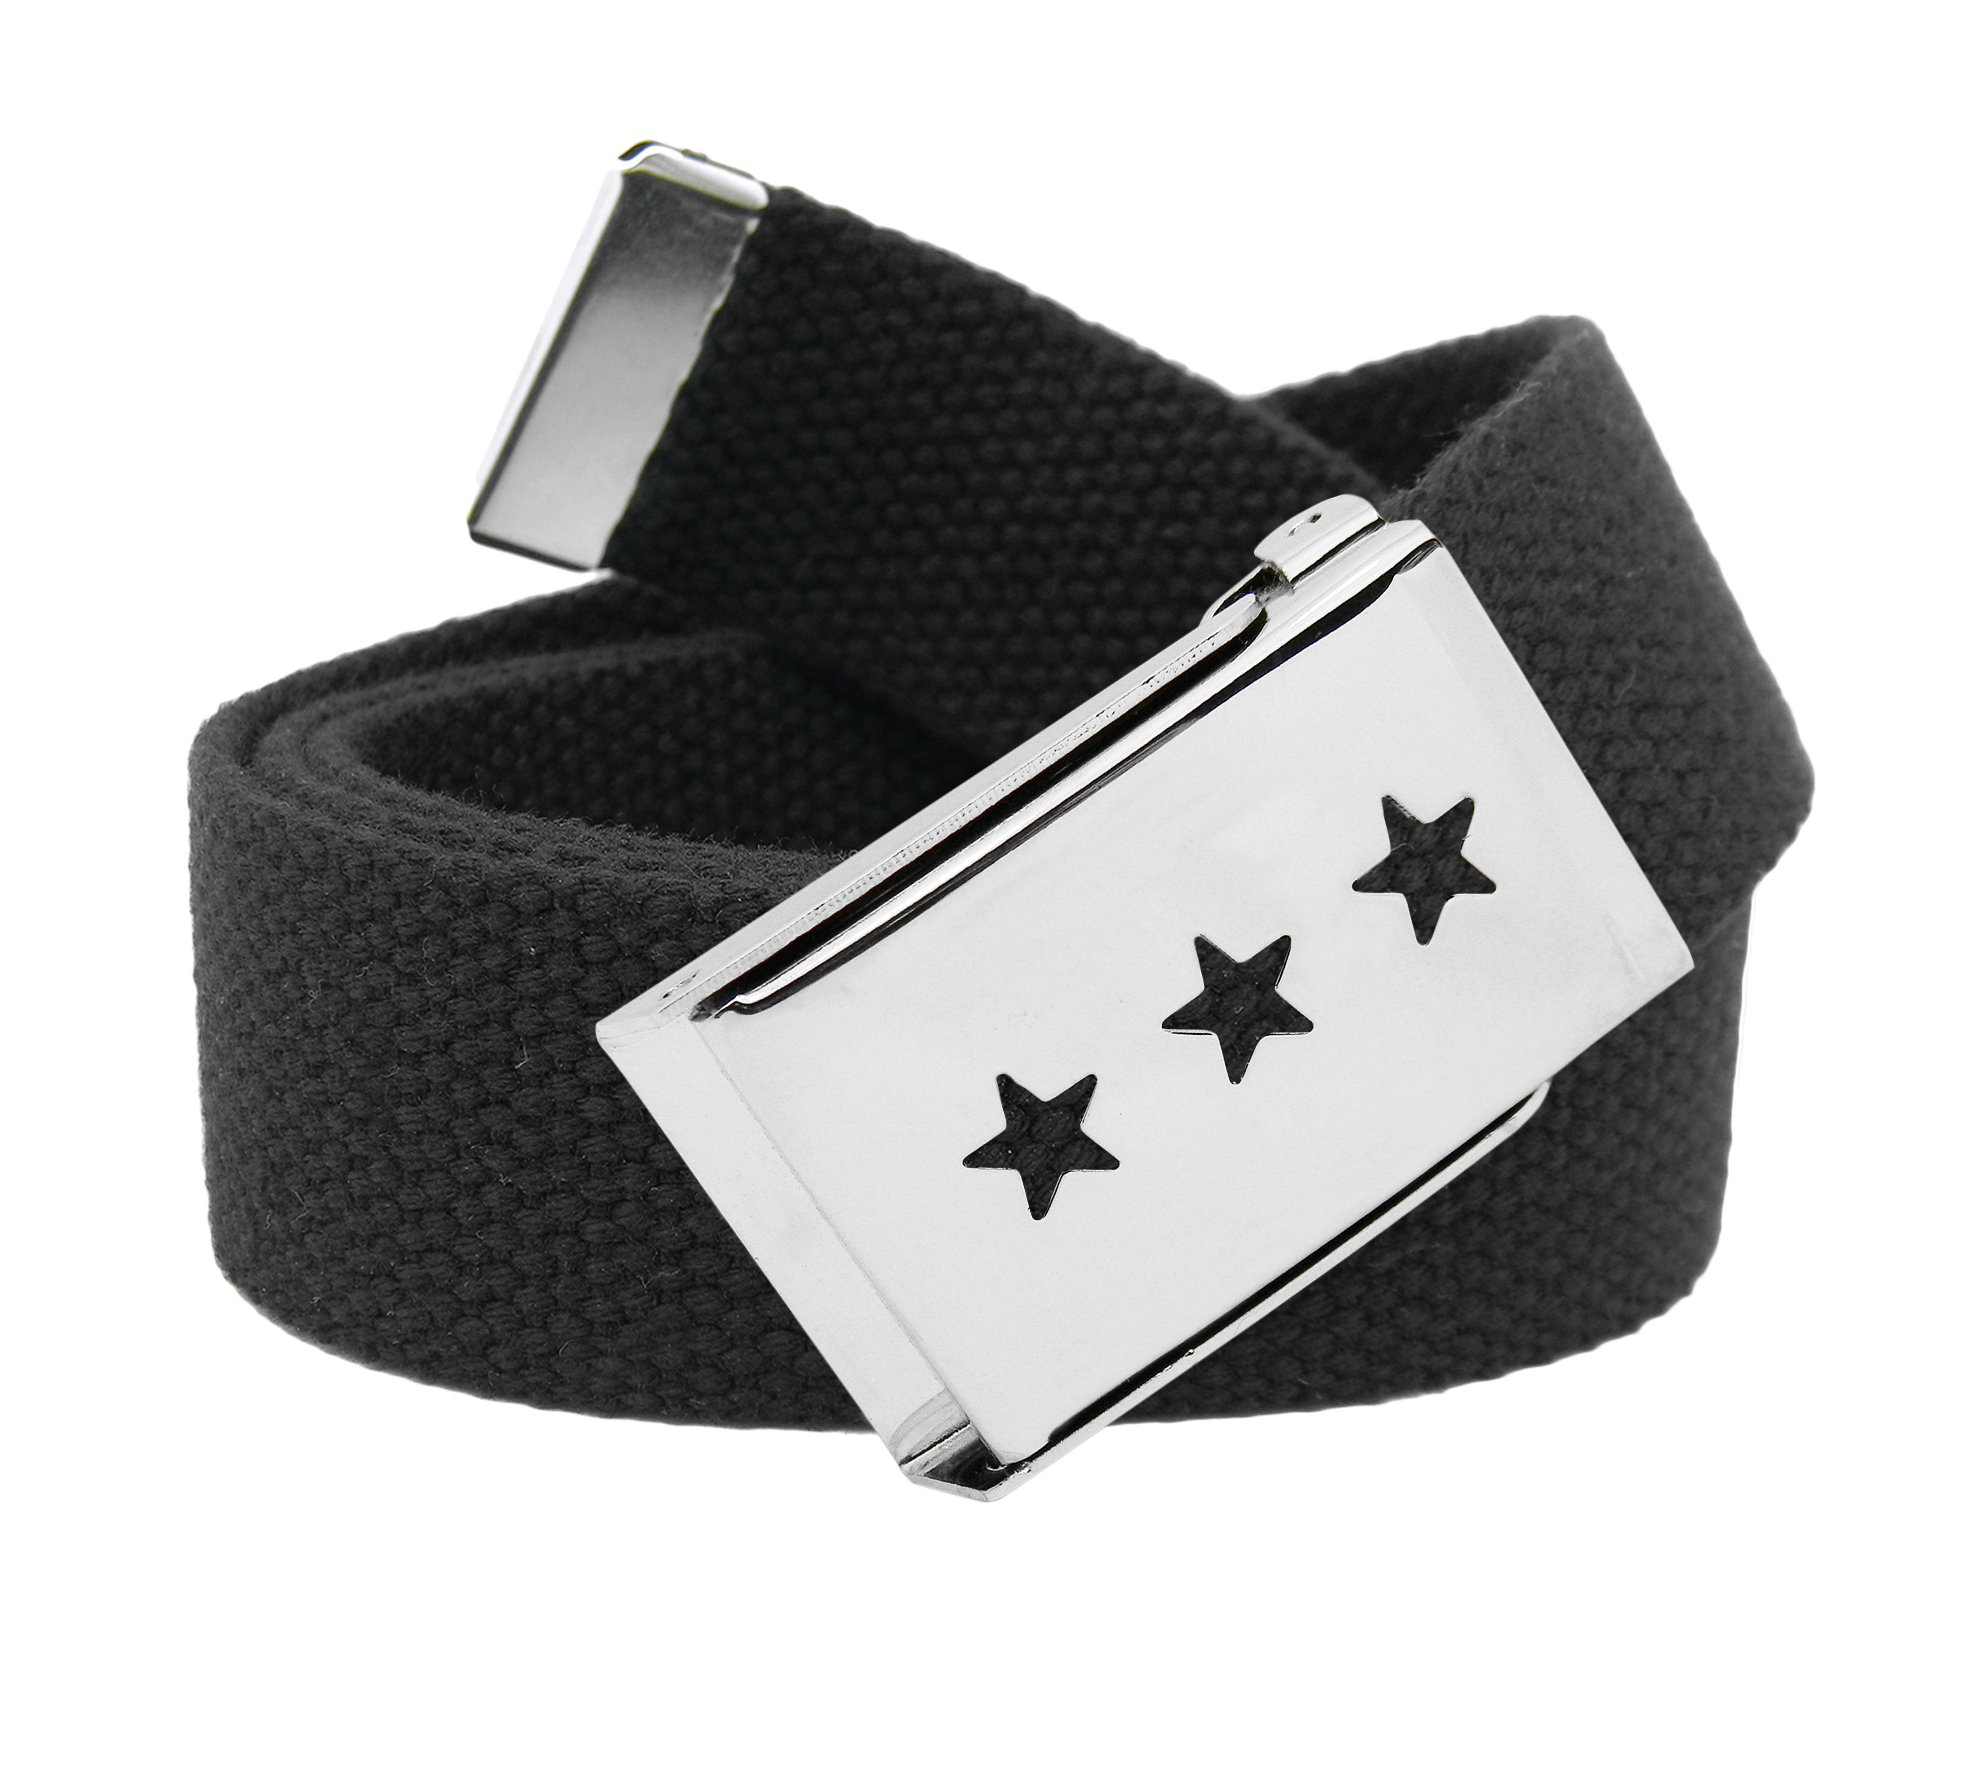 Women's Triple Star Cut Out Silver Flip Top Belt Buckle with Canvas Web Belt X-Large Black